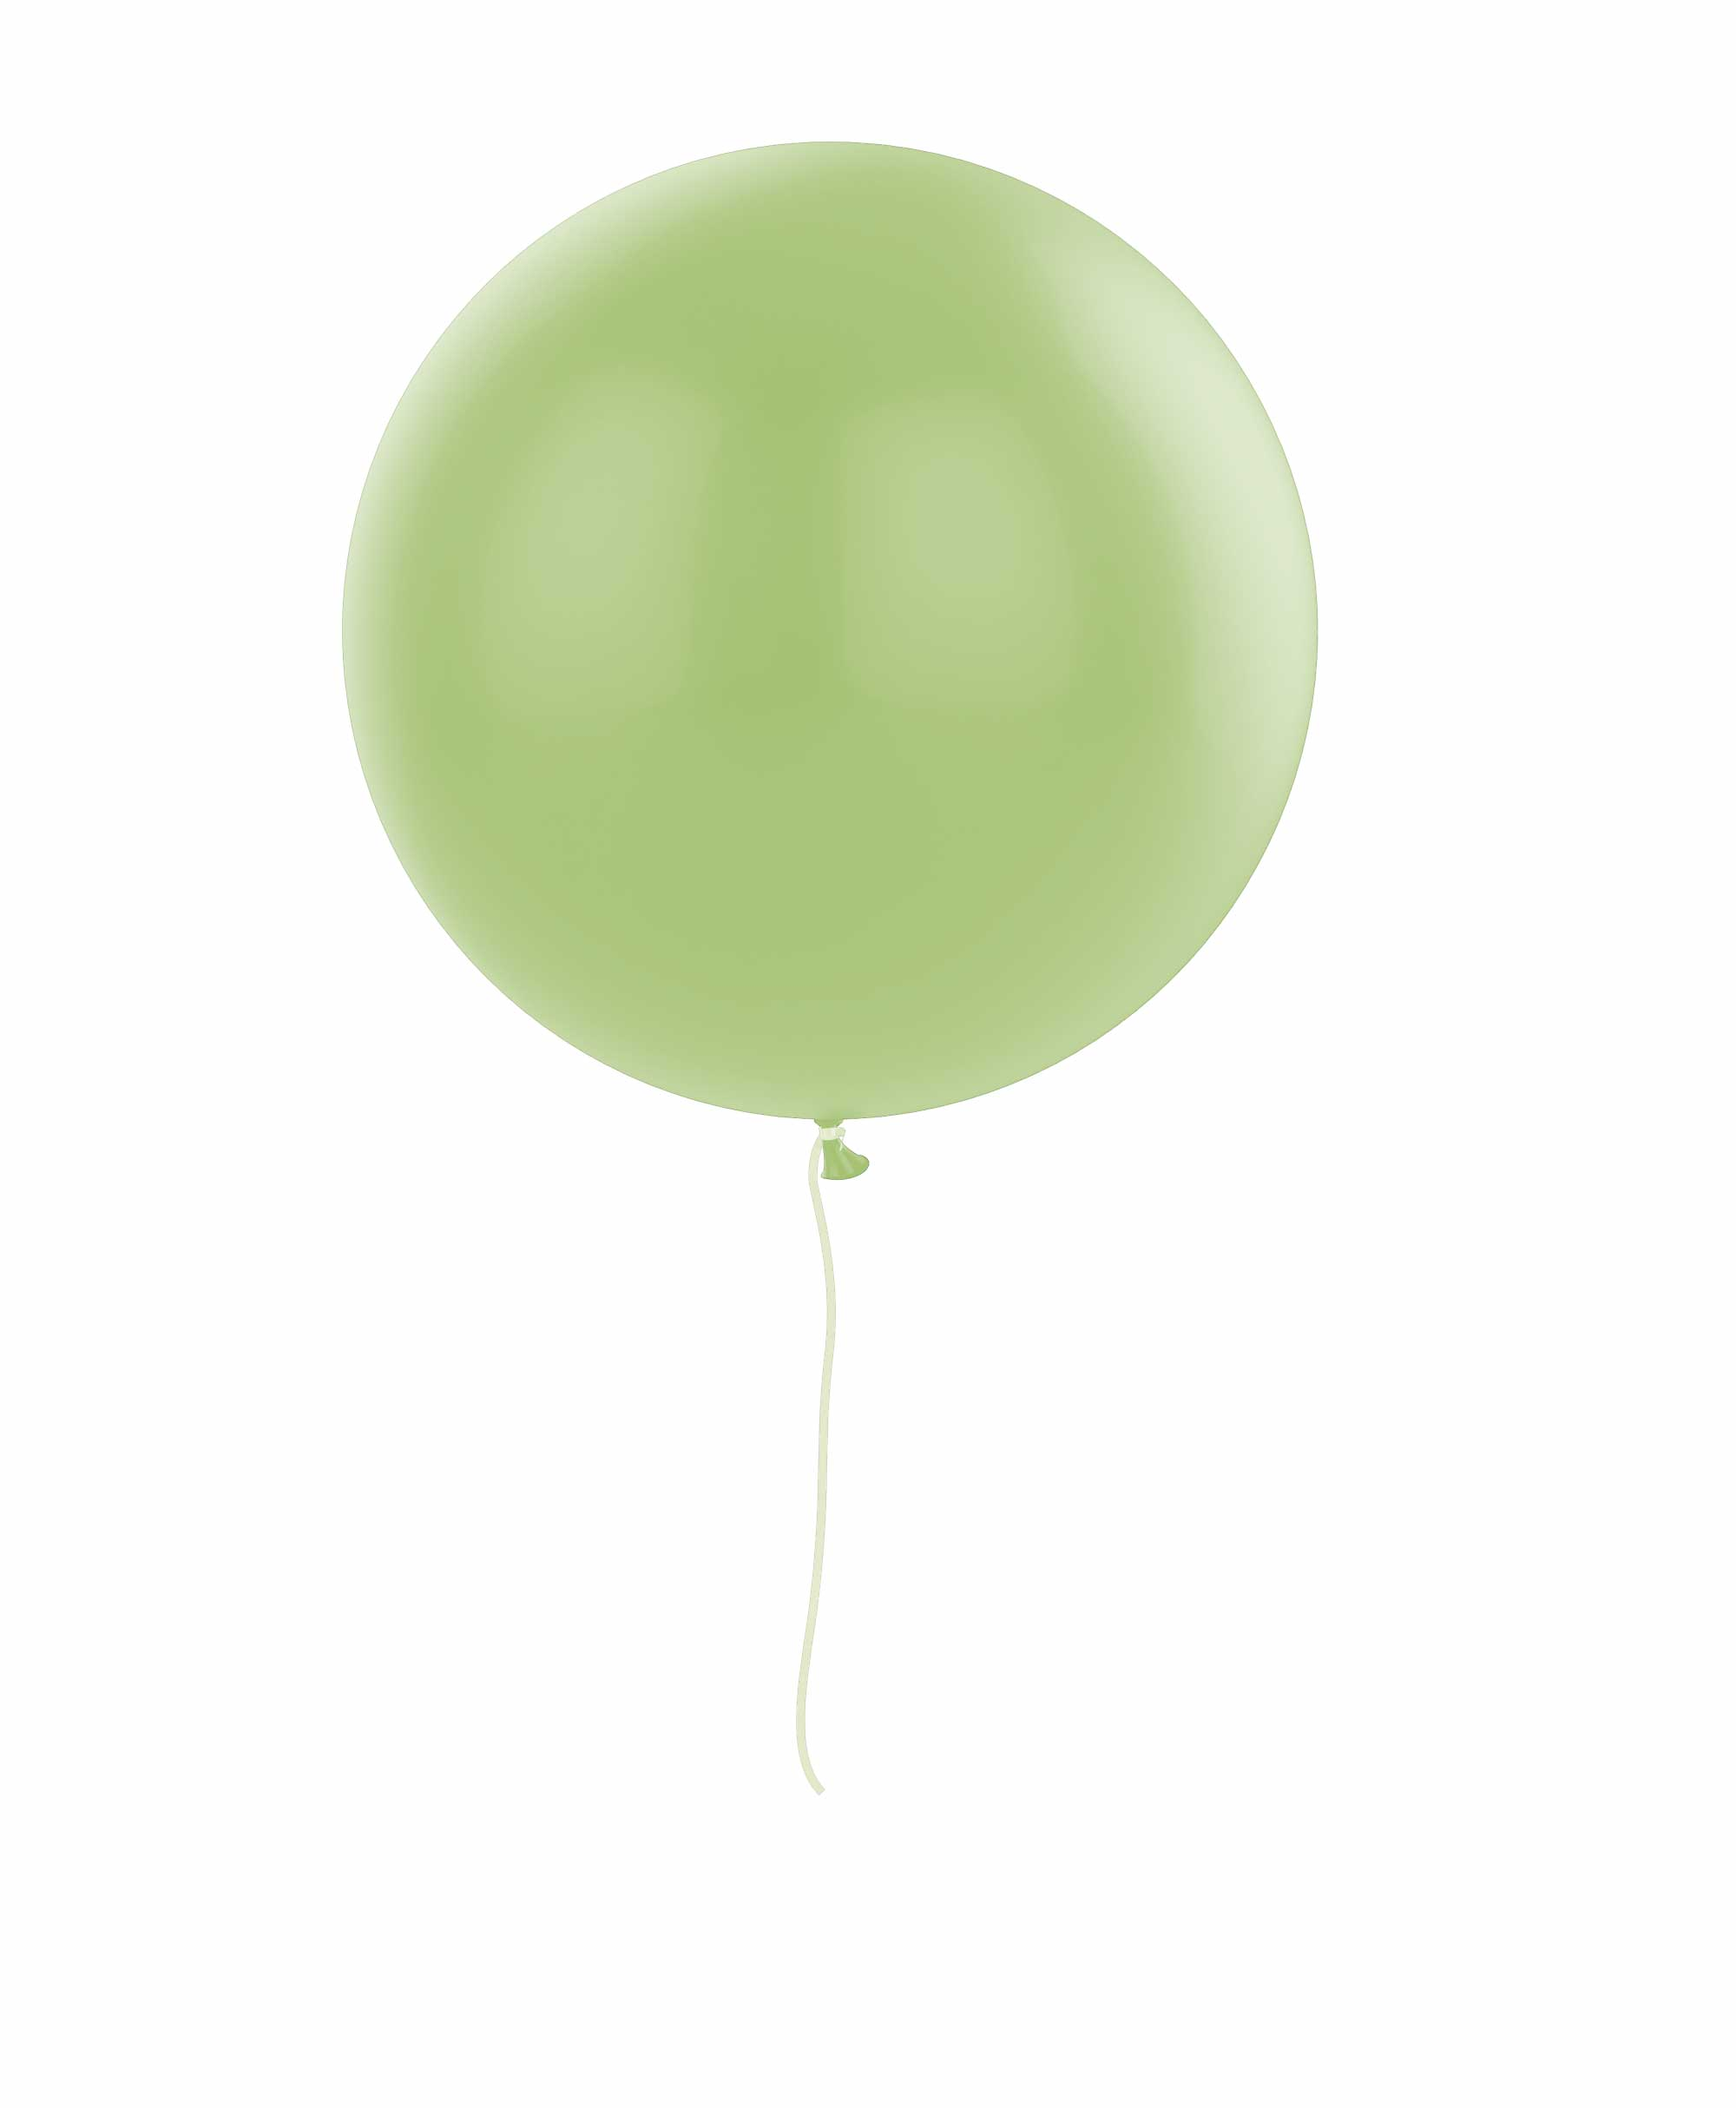 "Lime balloon 36"" - Spring theme"